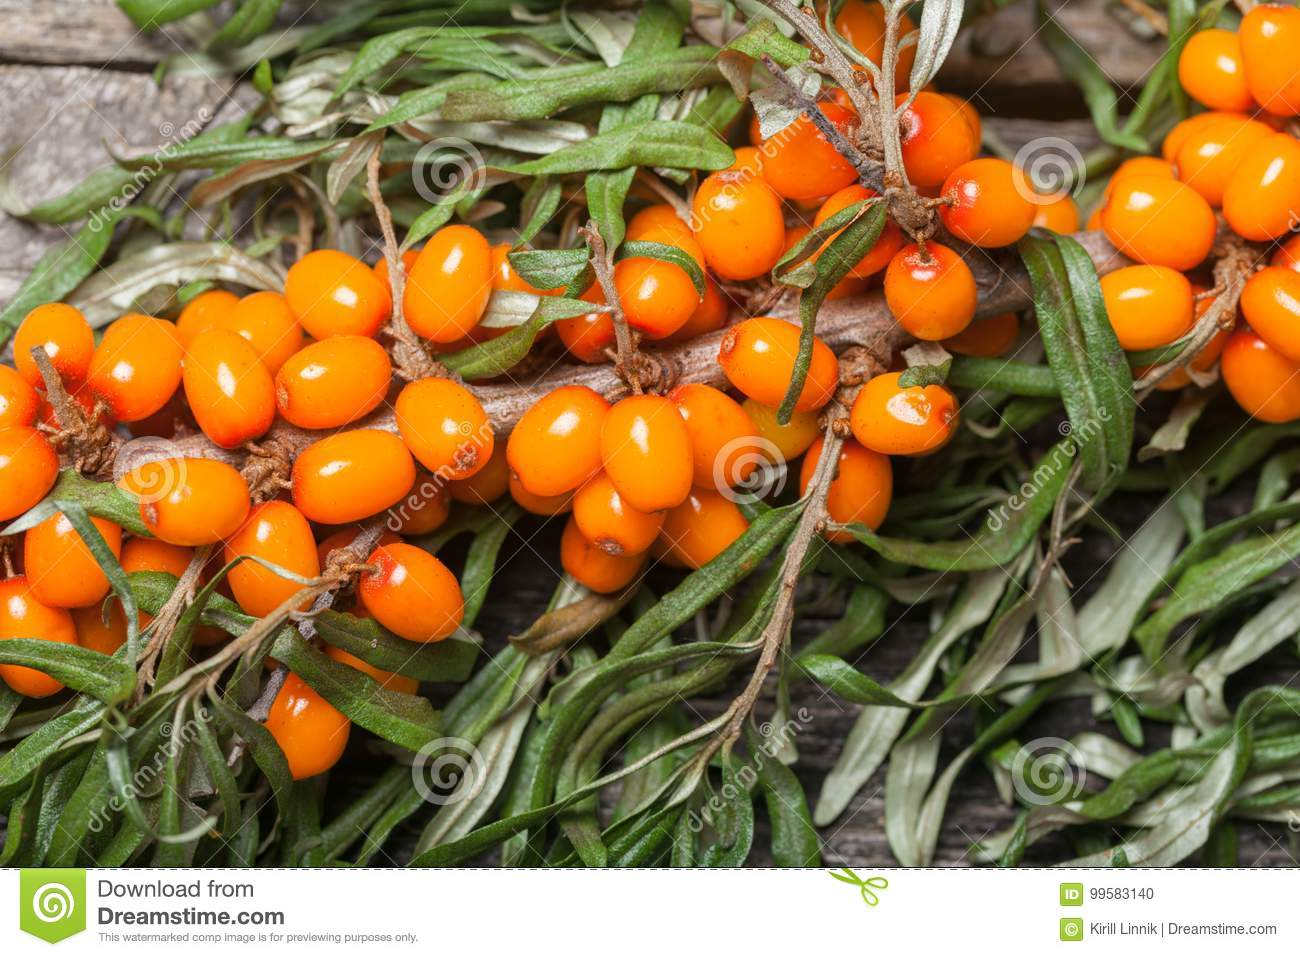 Download Fresh Seabuckthorn On The Table Stock Photo - Image of healthy, berry: 99583140